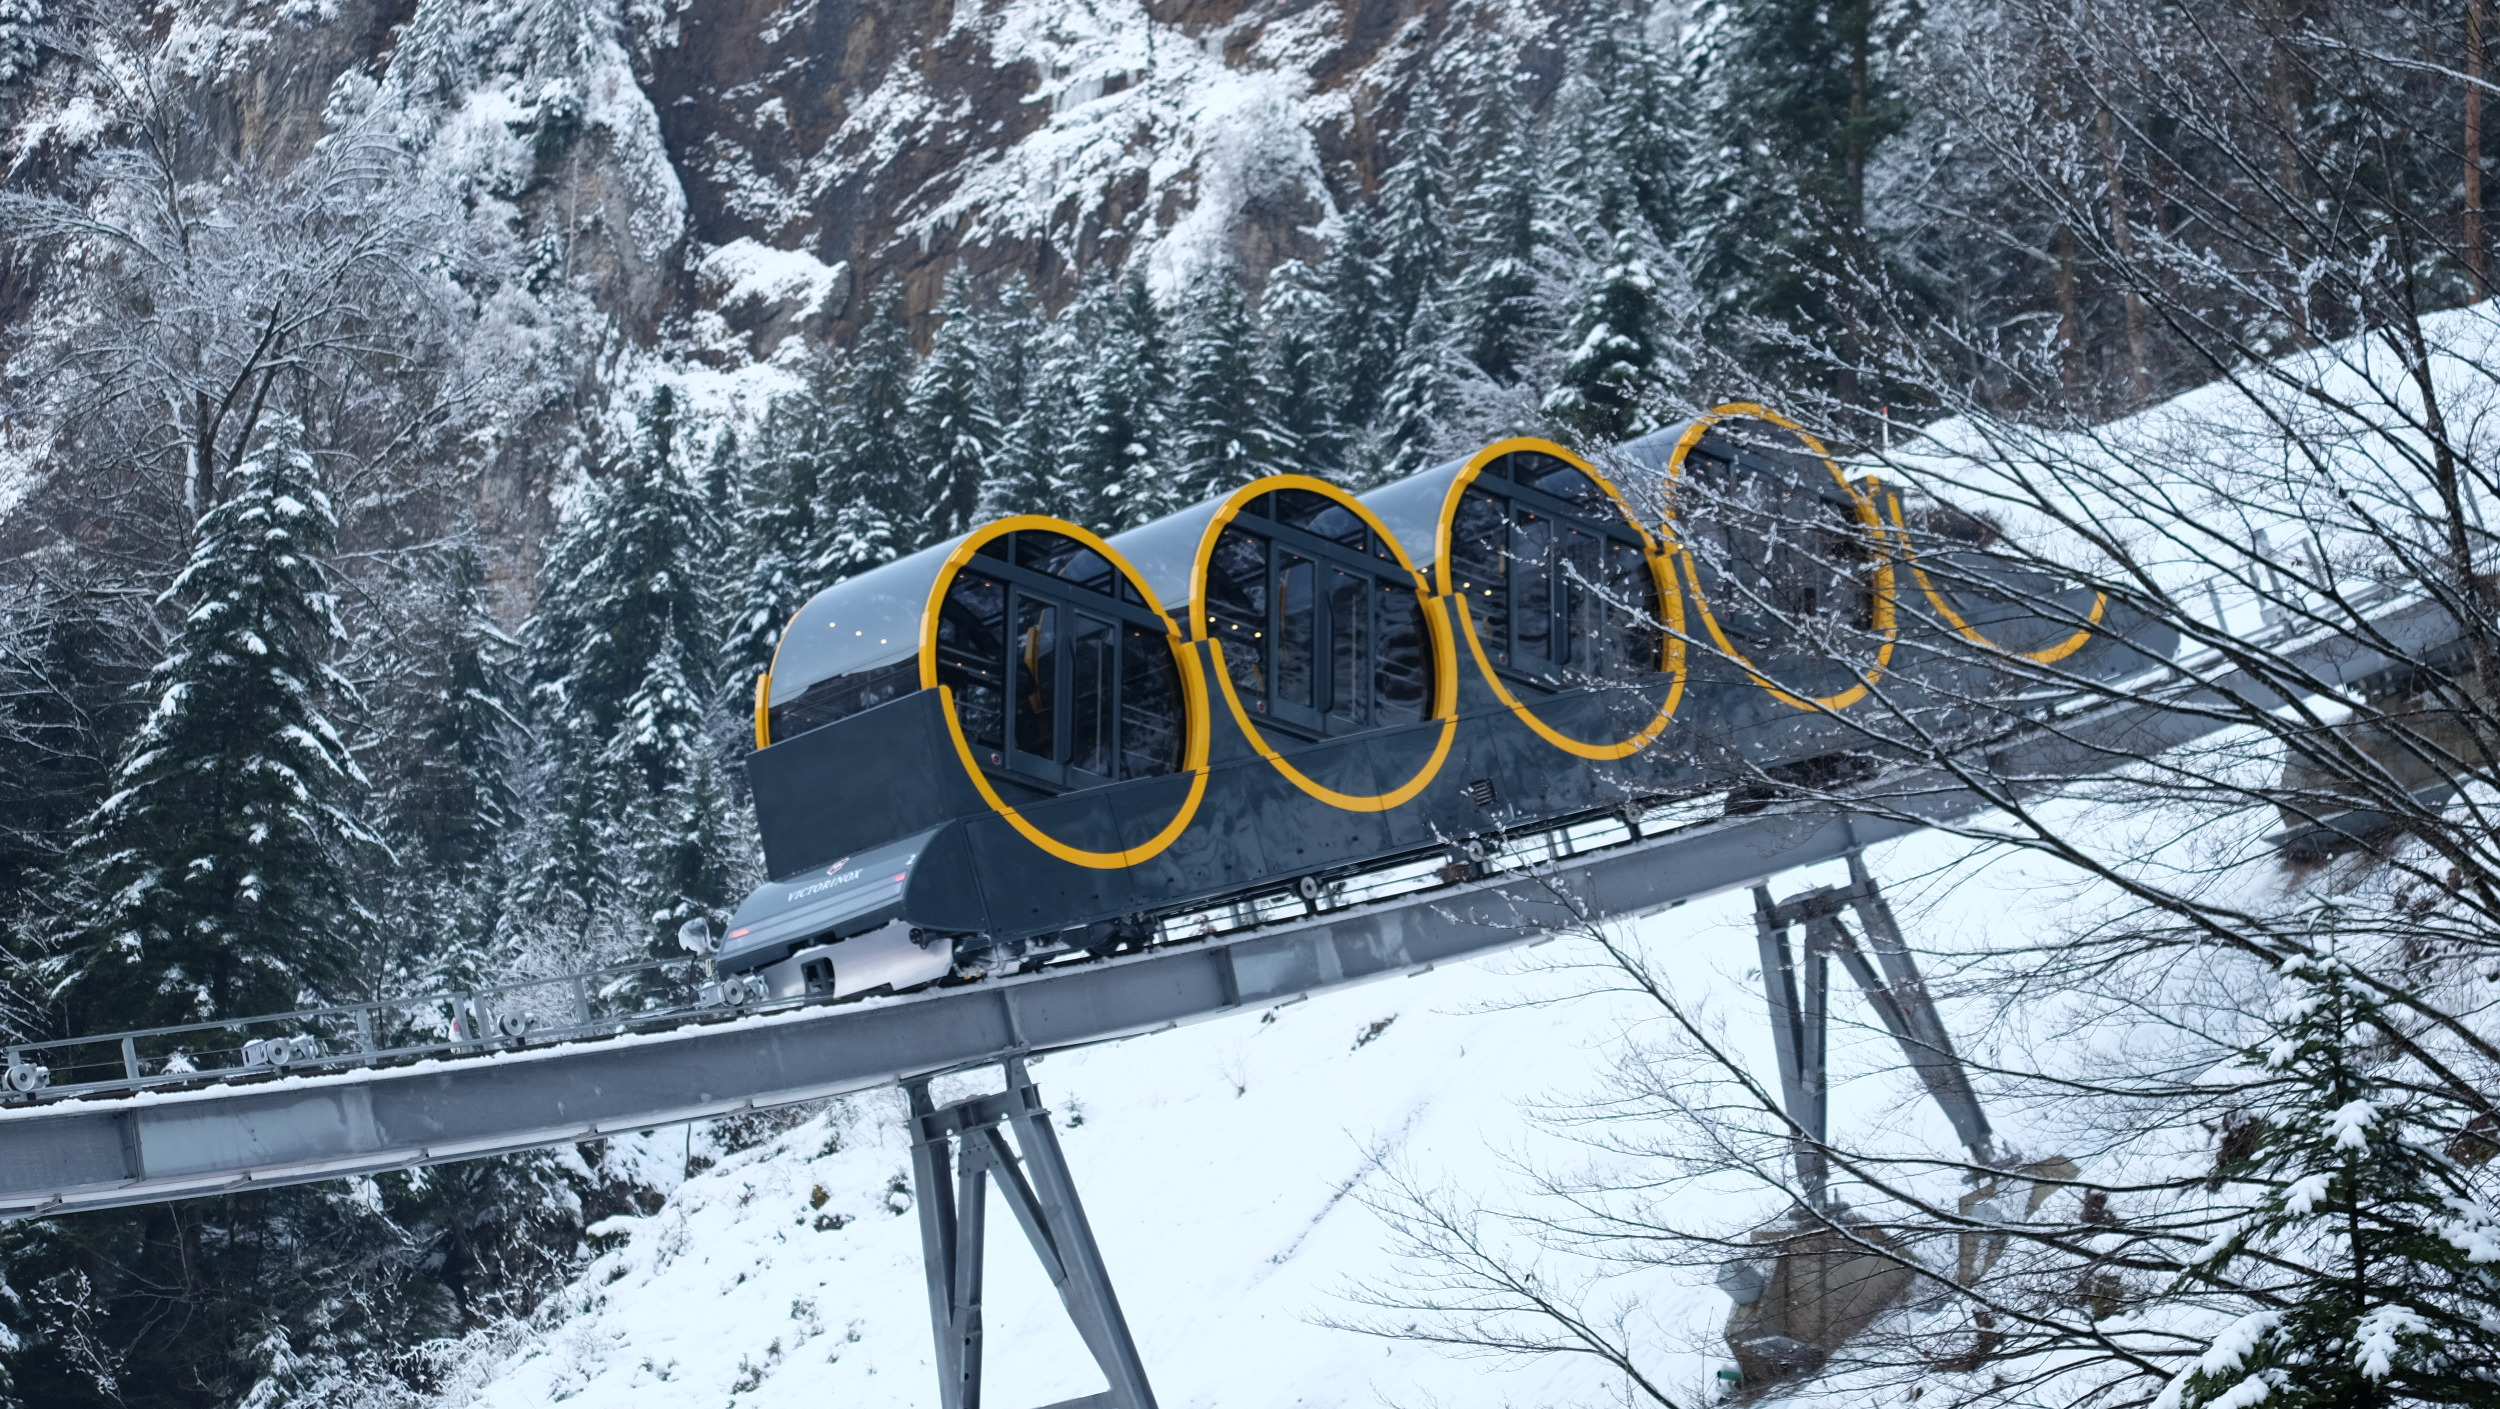 The new attraction has broken the record for steepest funicular in the world.